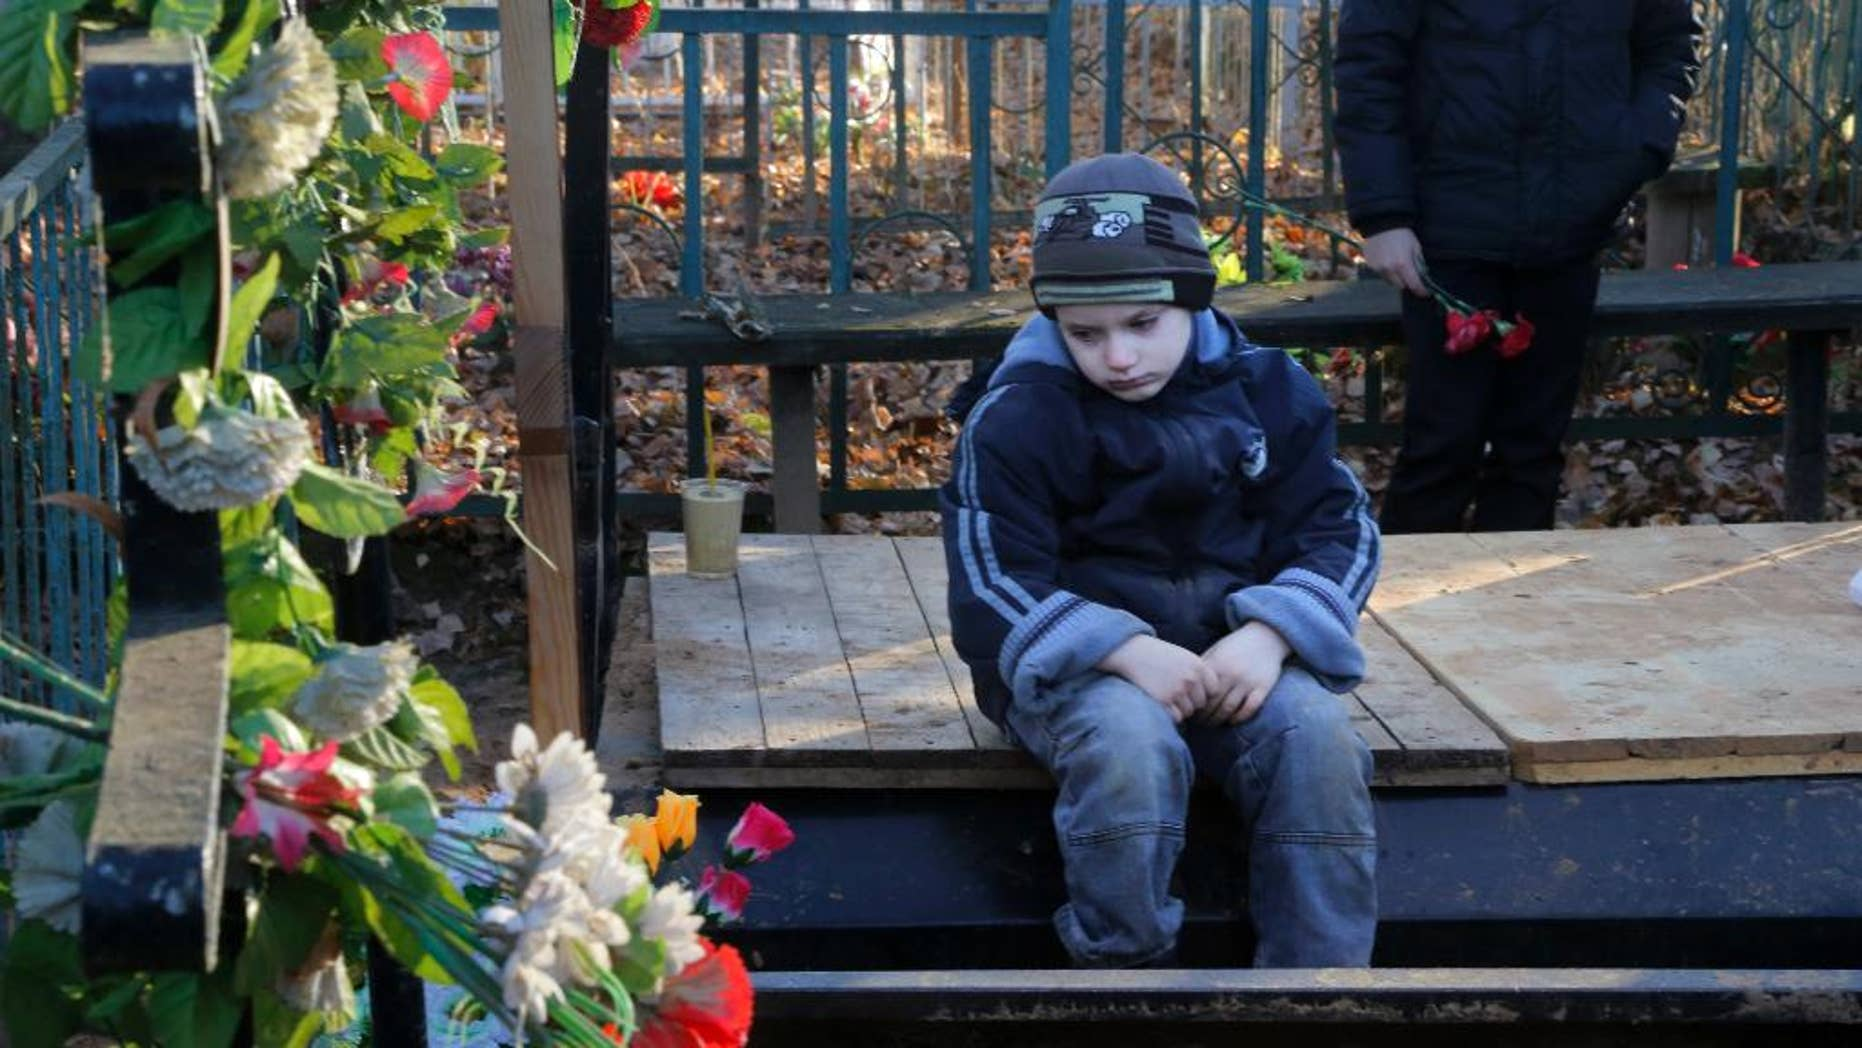 Mikhail, the grandson of one of the plane crash victims  Nina Lushchenko, sits at her grave, during her funeral at a cemetery in the village of Sitnya, 80 km (about 50 miles) of Veliky Novgorod, Russia, Thursday, Nov. 5, 2015.  The first victim of Saturday's plane crash in Egypt was laid to rest on Thursday following a funeral service in a medieval church in the north Russian city of Veliky Novgorod.  Russia's Airbus 321-200 broke up over the Sinai Peninsula en route from the resort town of Sharm el-Sheikh to St. Petersburg, killing all 224 on board. (AP Photo/Dmitry Lovetsky)